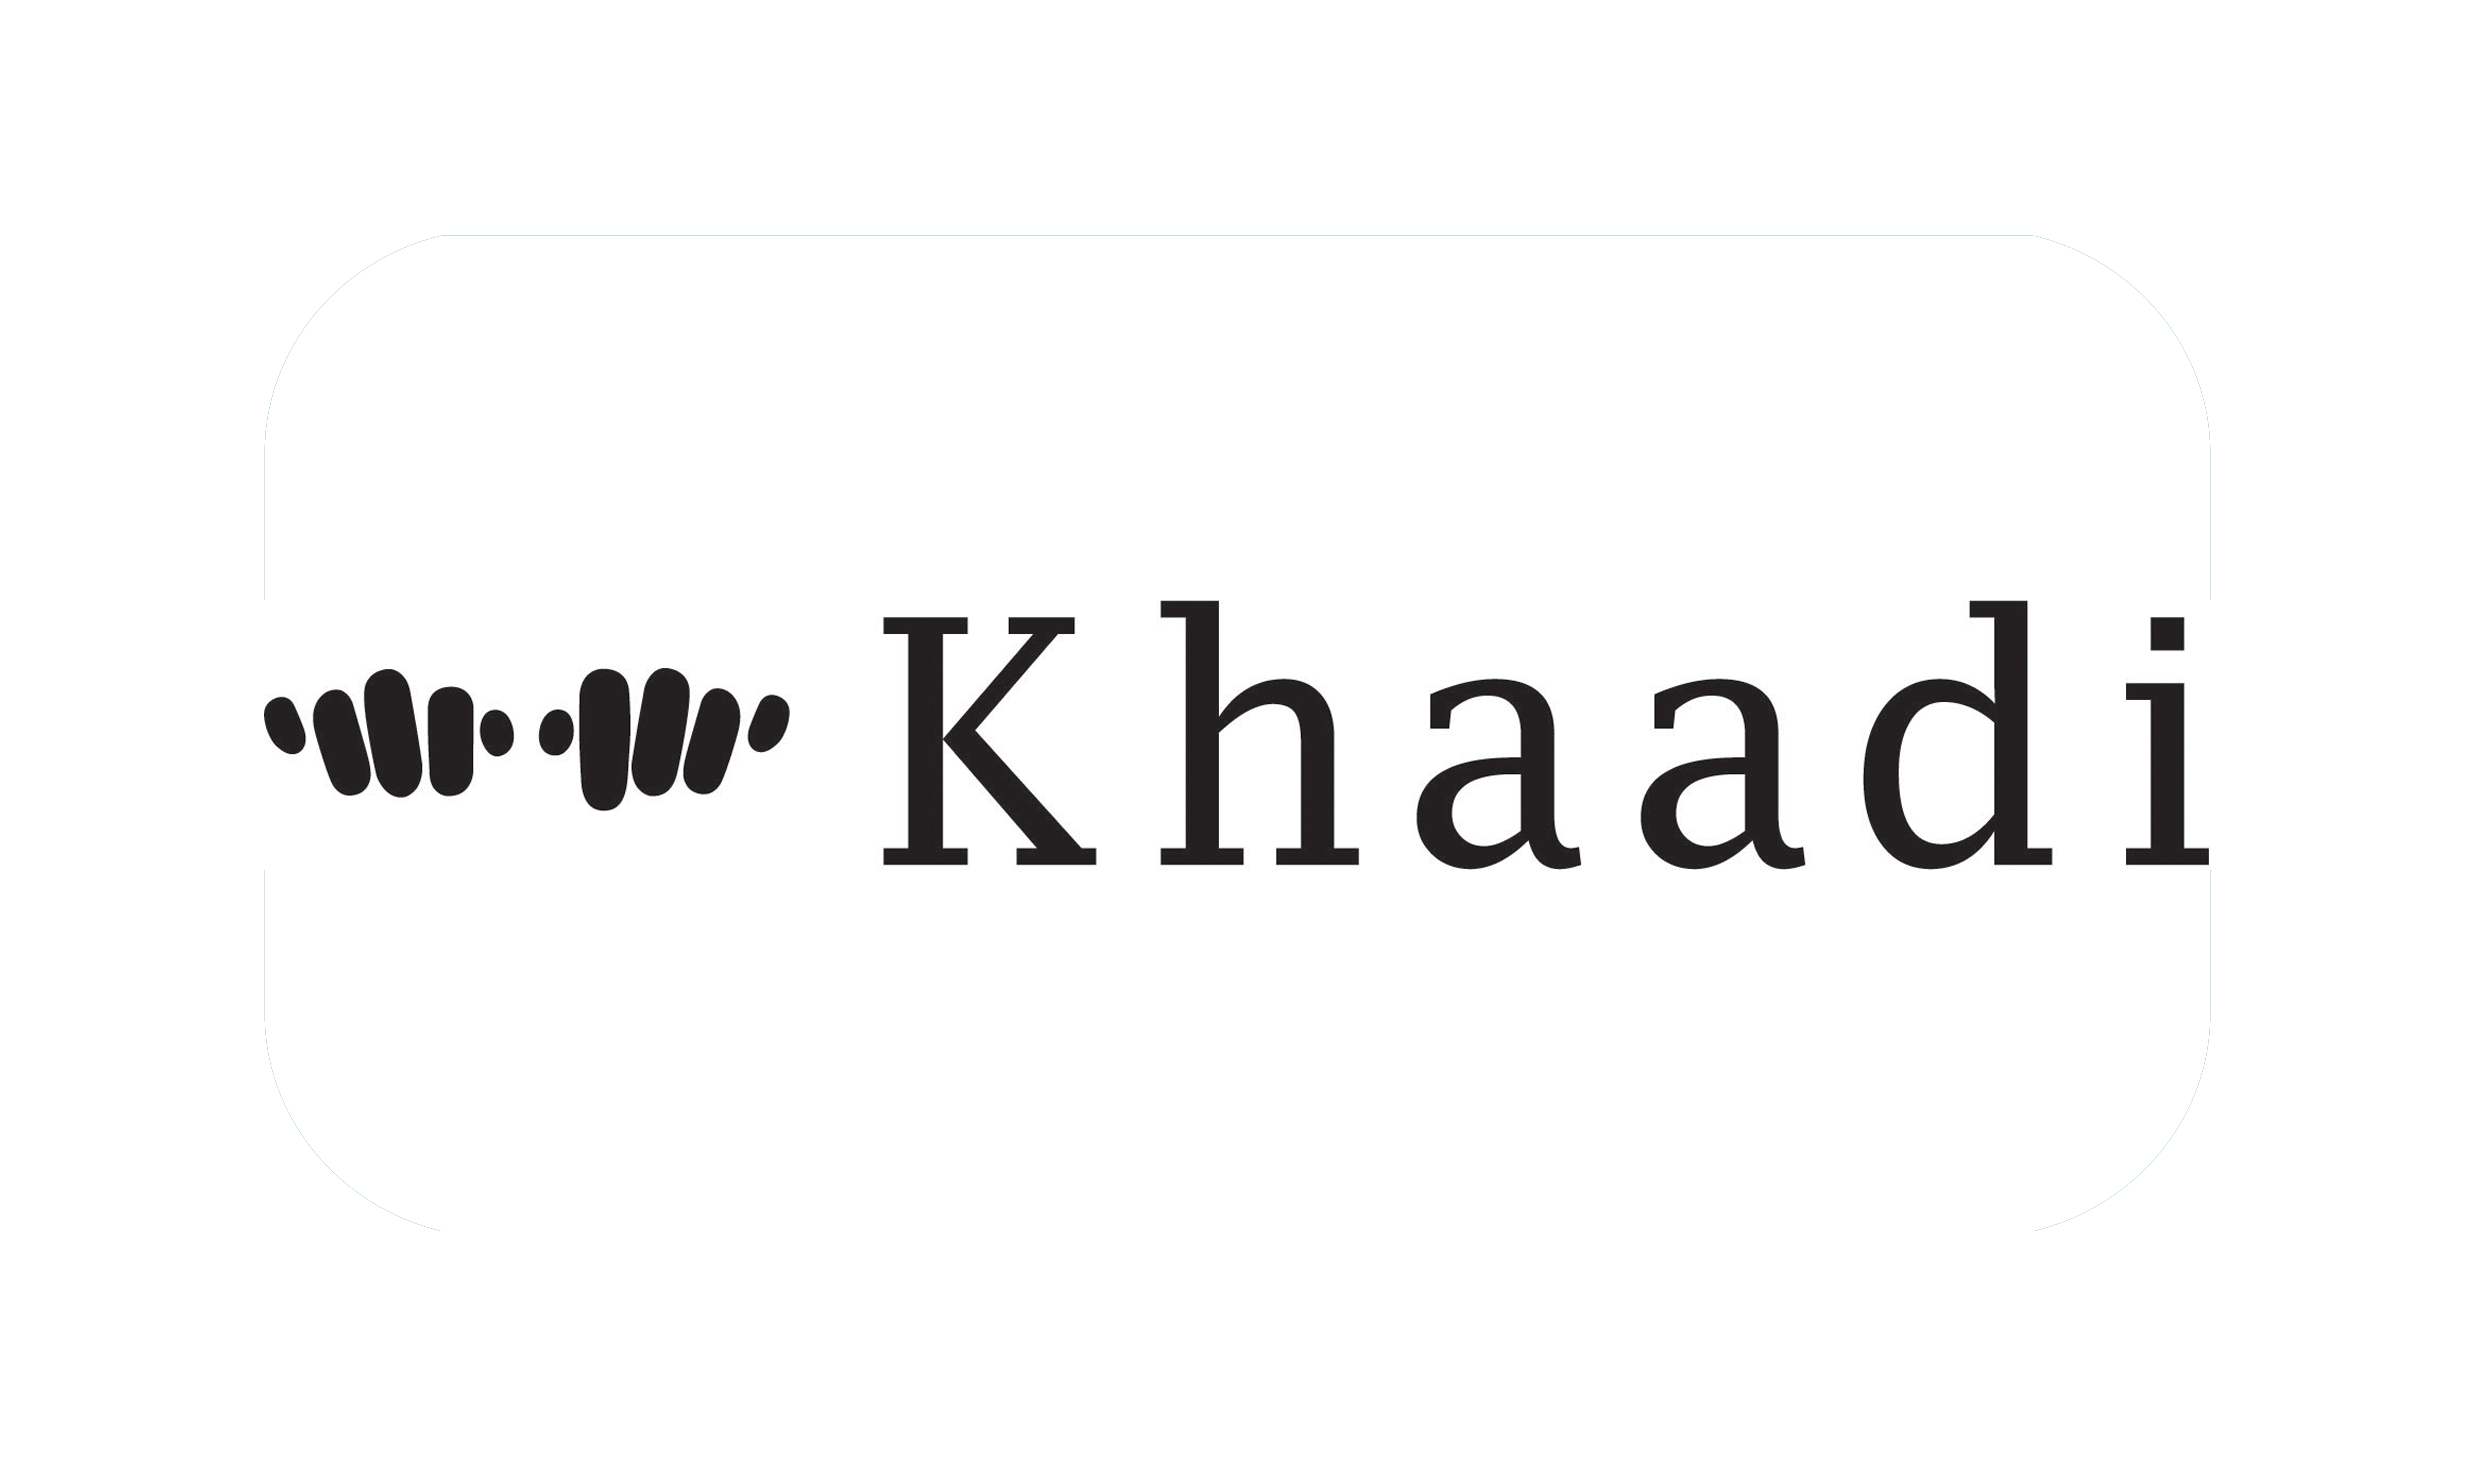 Khaadi logo clipart graphic stock NOWPDP, Yaqeeen | NOWPDP graphic stock